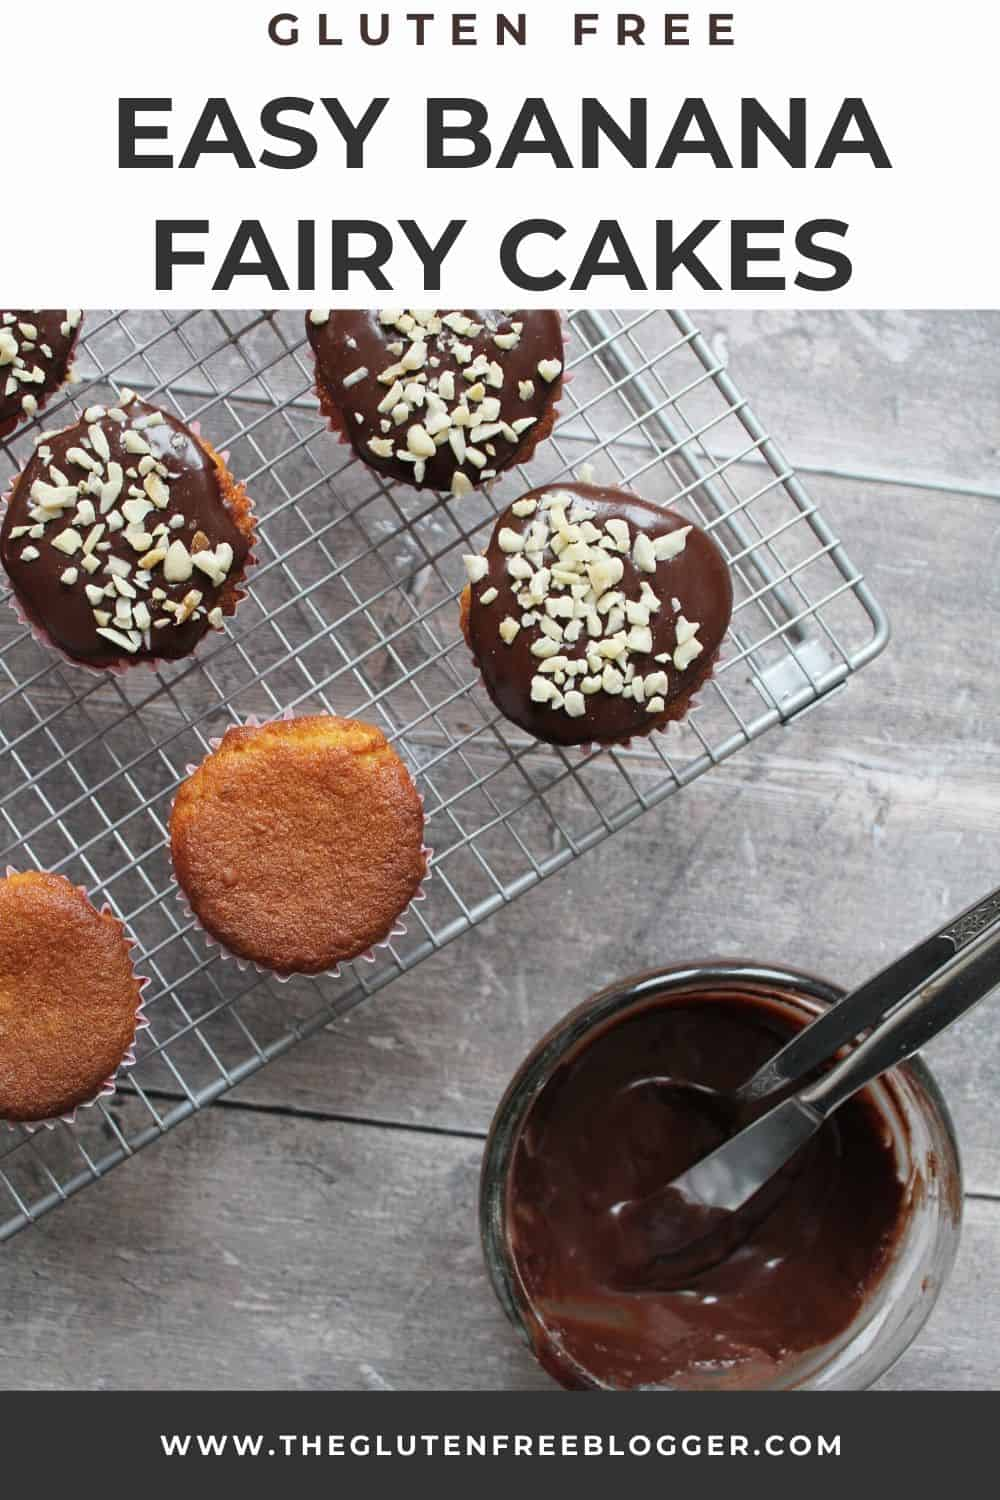 Gluten Free Banana Fairy Cakes Recipe (3)